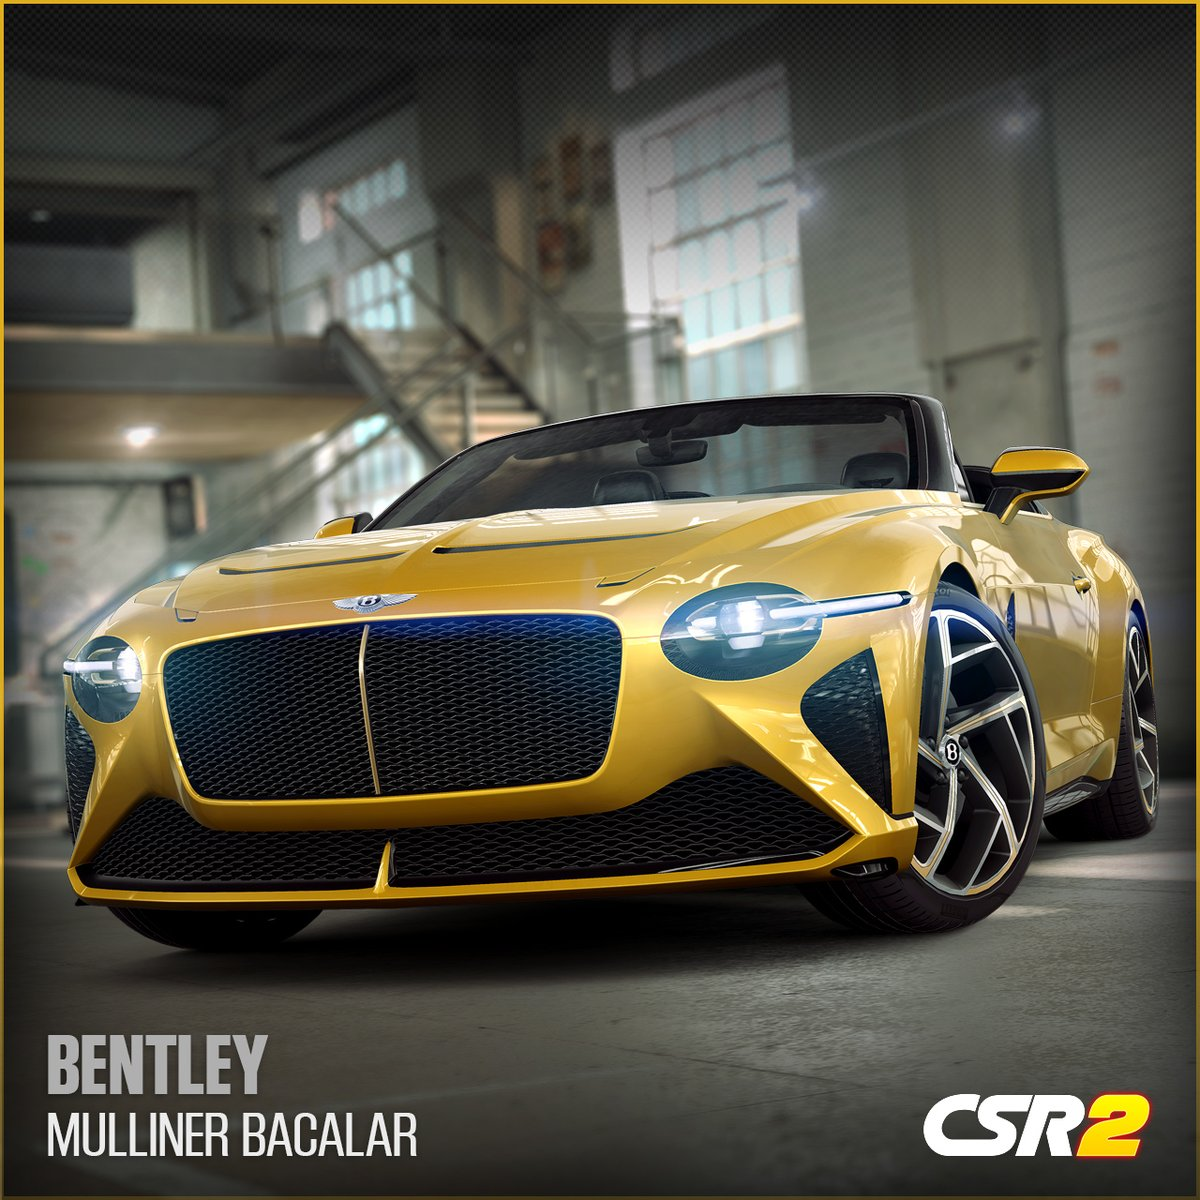 The rarest two door #Bentley of the modern era comes to @CSRRacing. Dynamically-sculpted, the #BentleyMulliner #Bacalar is available now in #CSR2: https://t.co/wXYz1cDeln https://t.co/KAksonRi2F